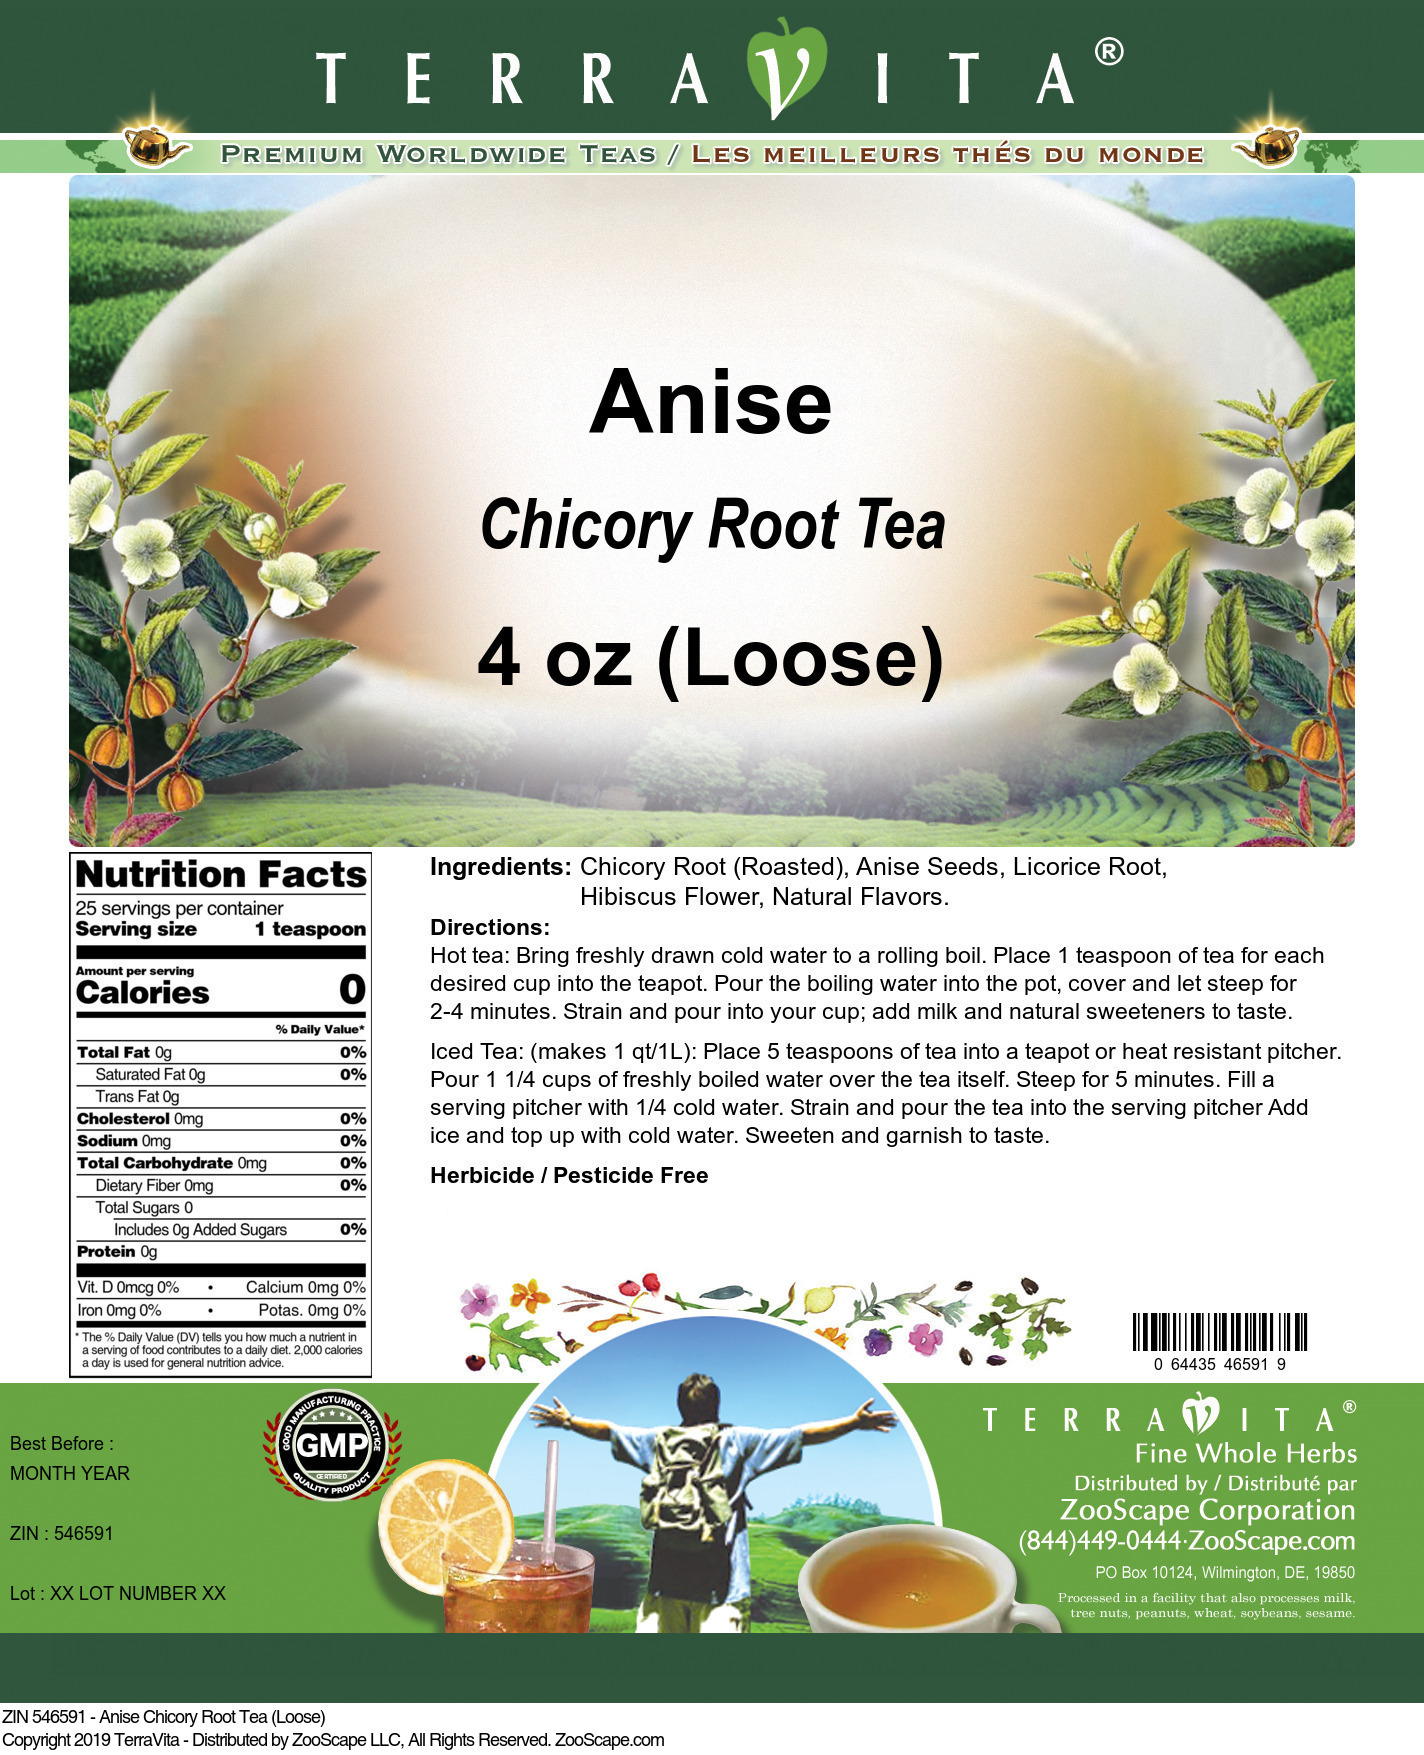 Anise Chicory Root